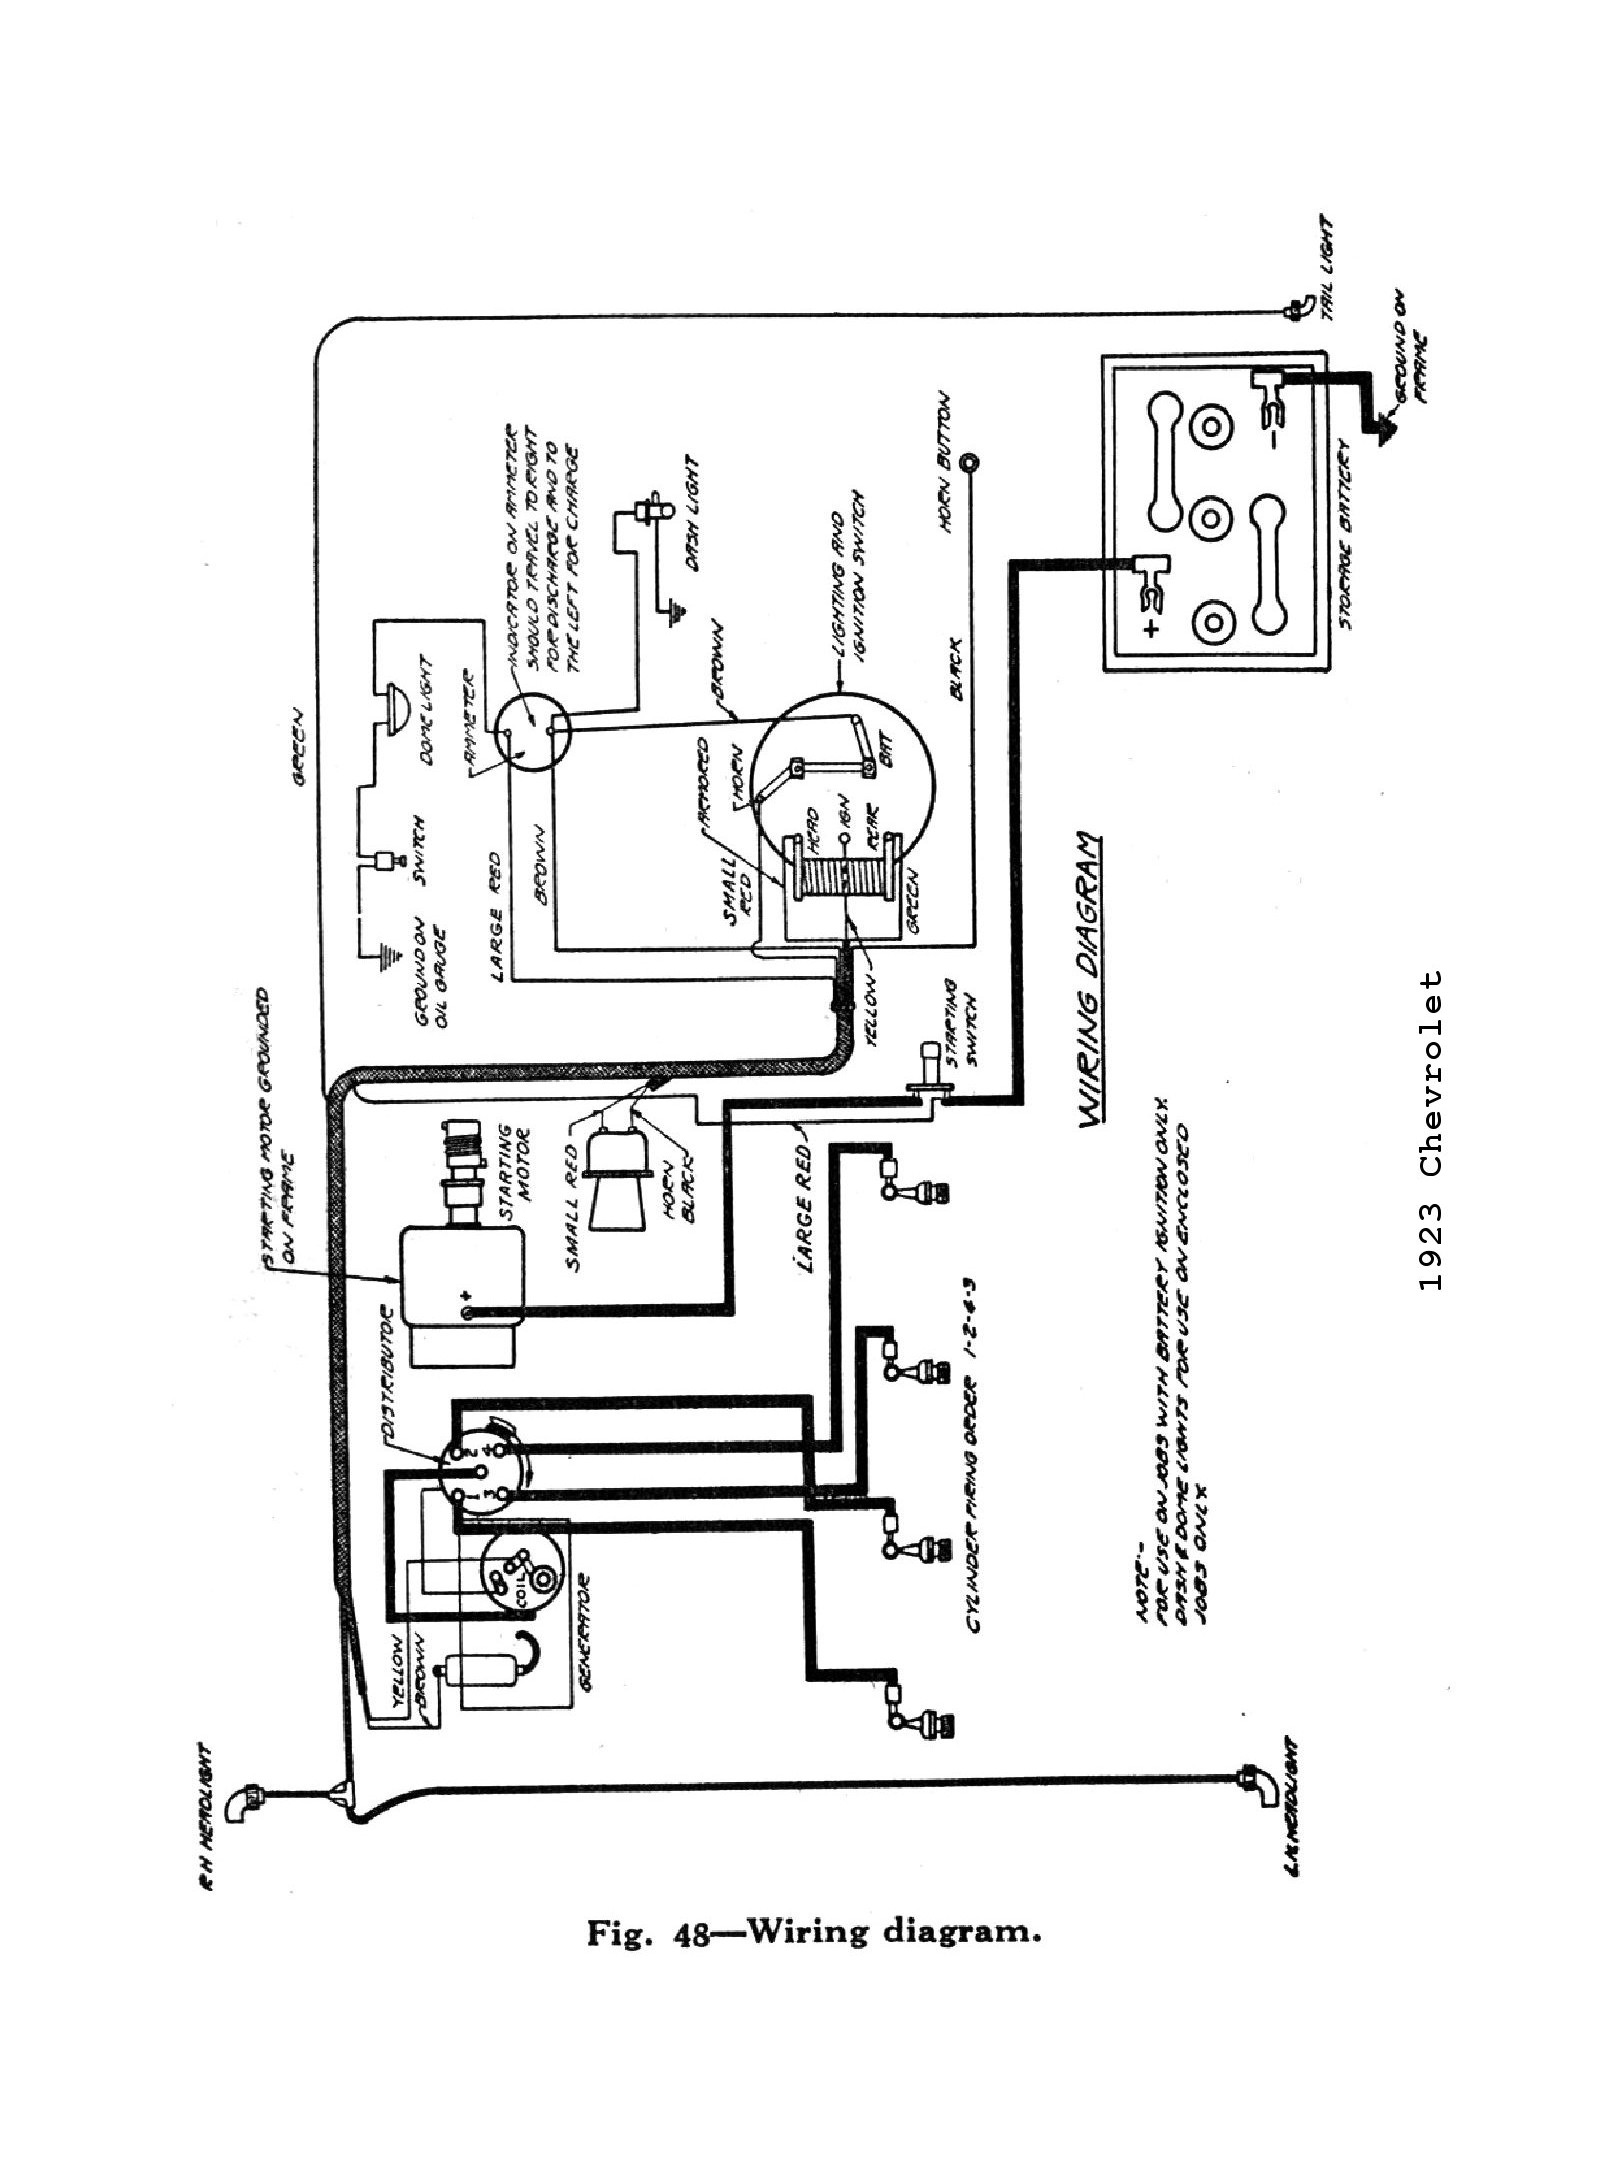 Wiring Diagram For Monte Carlo